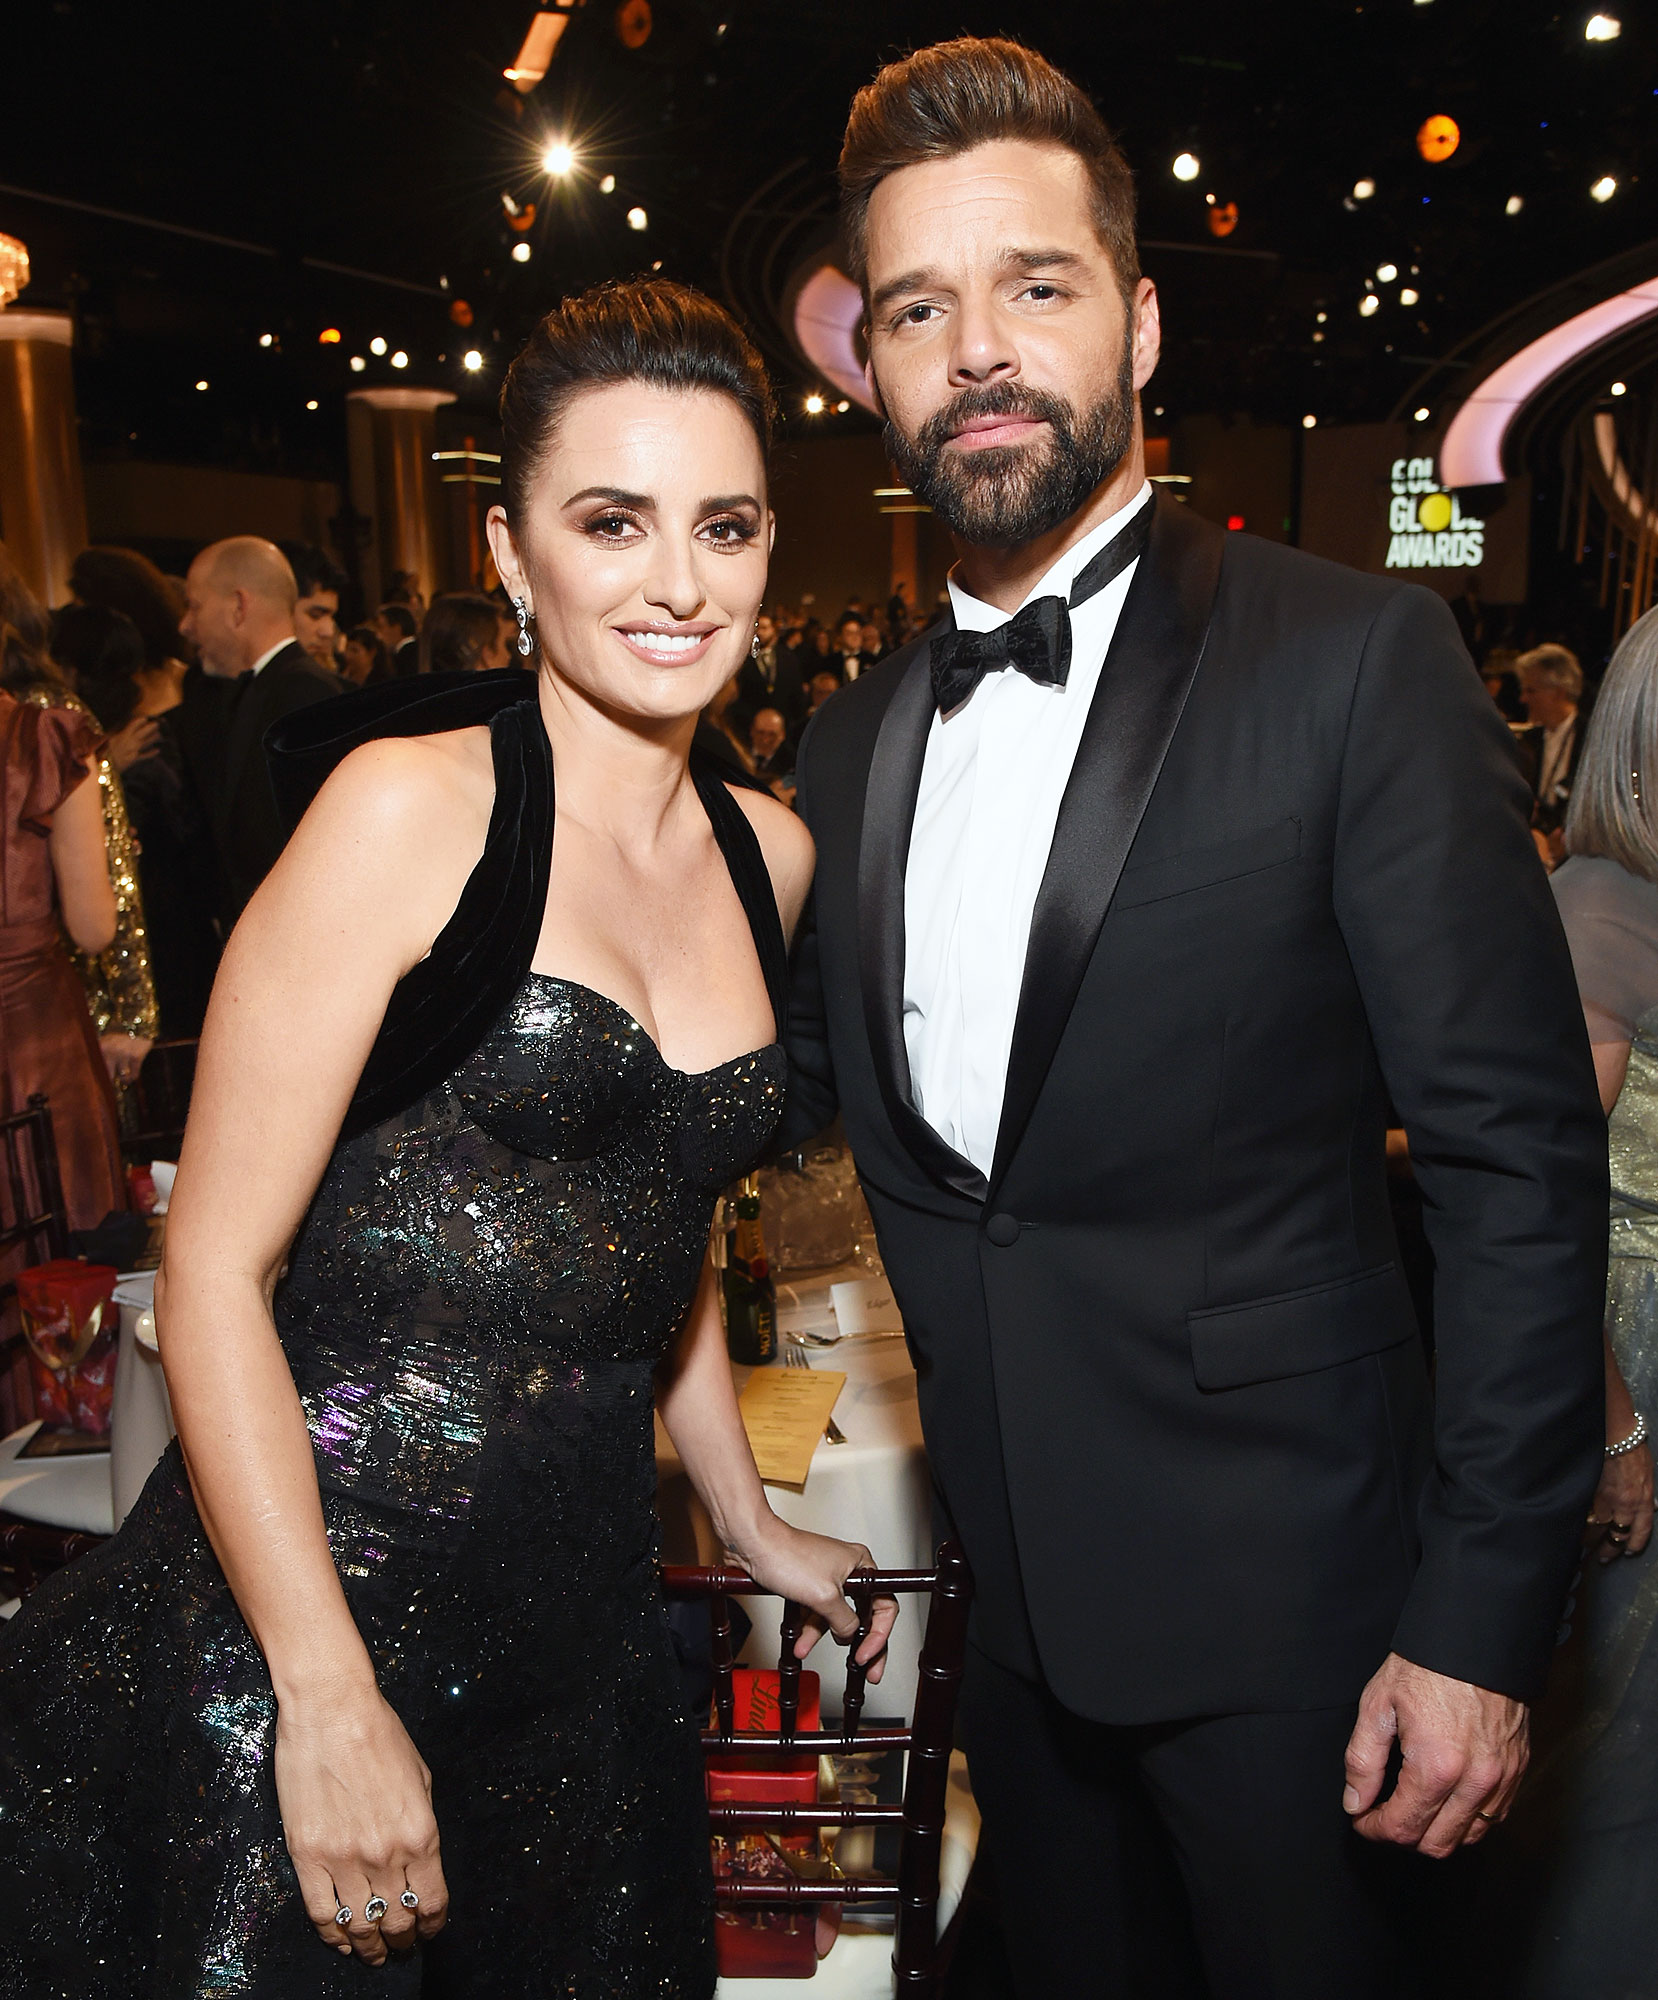 Inside Golden Globes 2019 Penelope Cruz Ricky Martin - The Assassination of Gianni Versace: American Crime Story costars Penélope Cruz and Ricky Martin reunited before taking their seats inside the hotel.